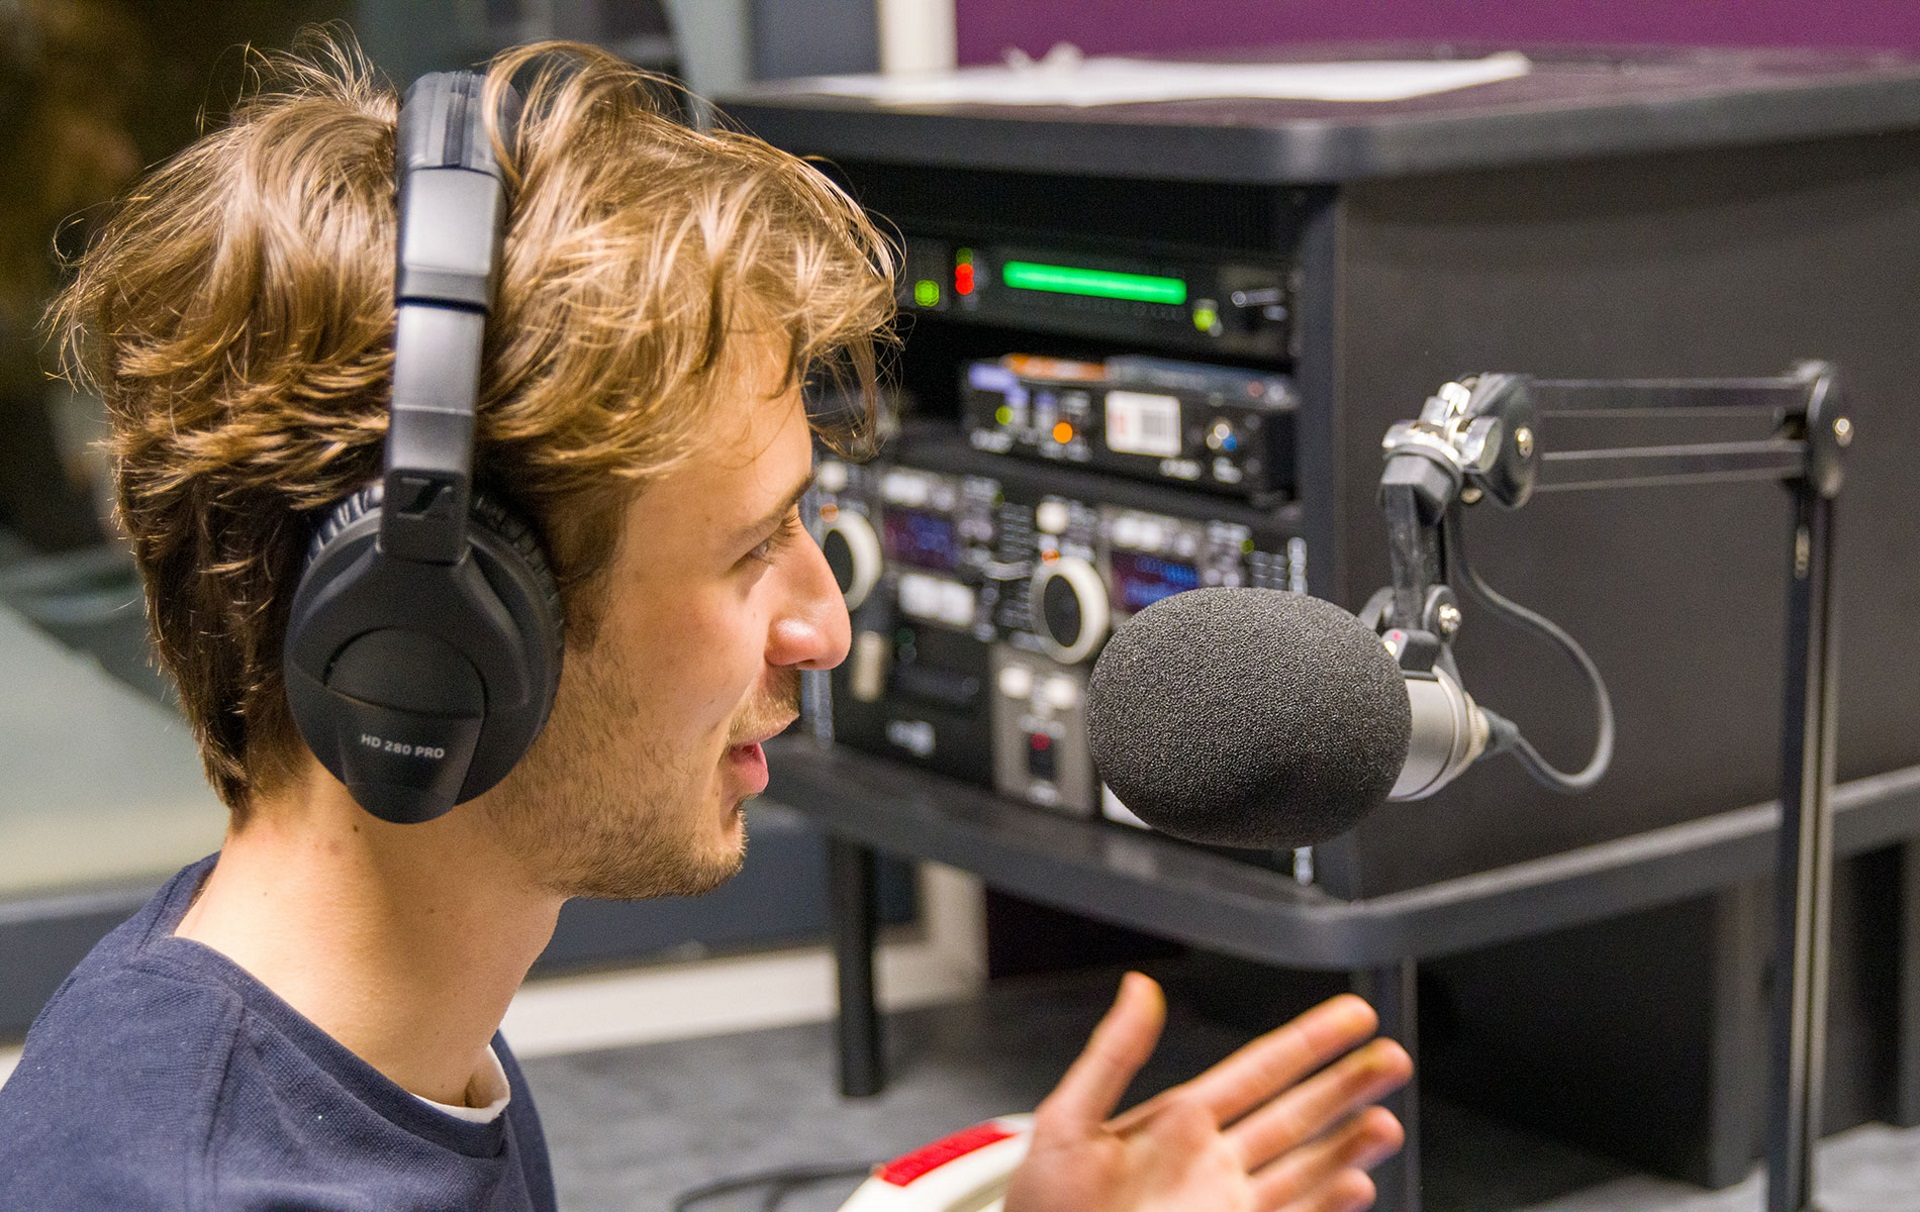 Alex recording a podcast on campus